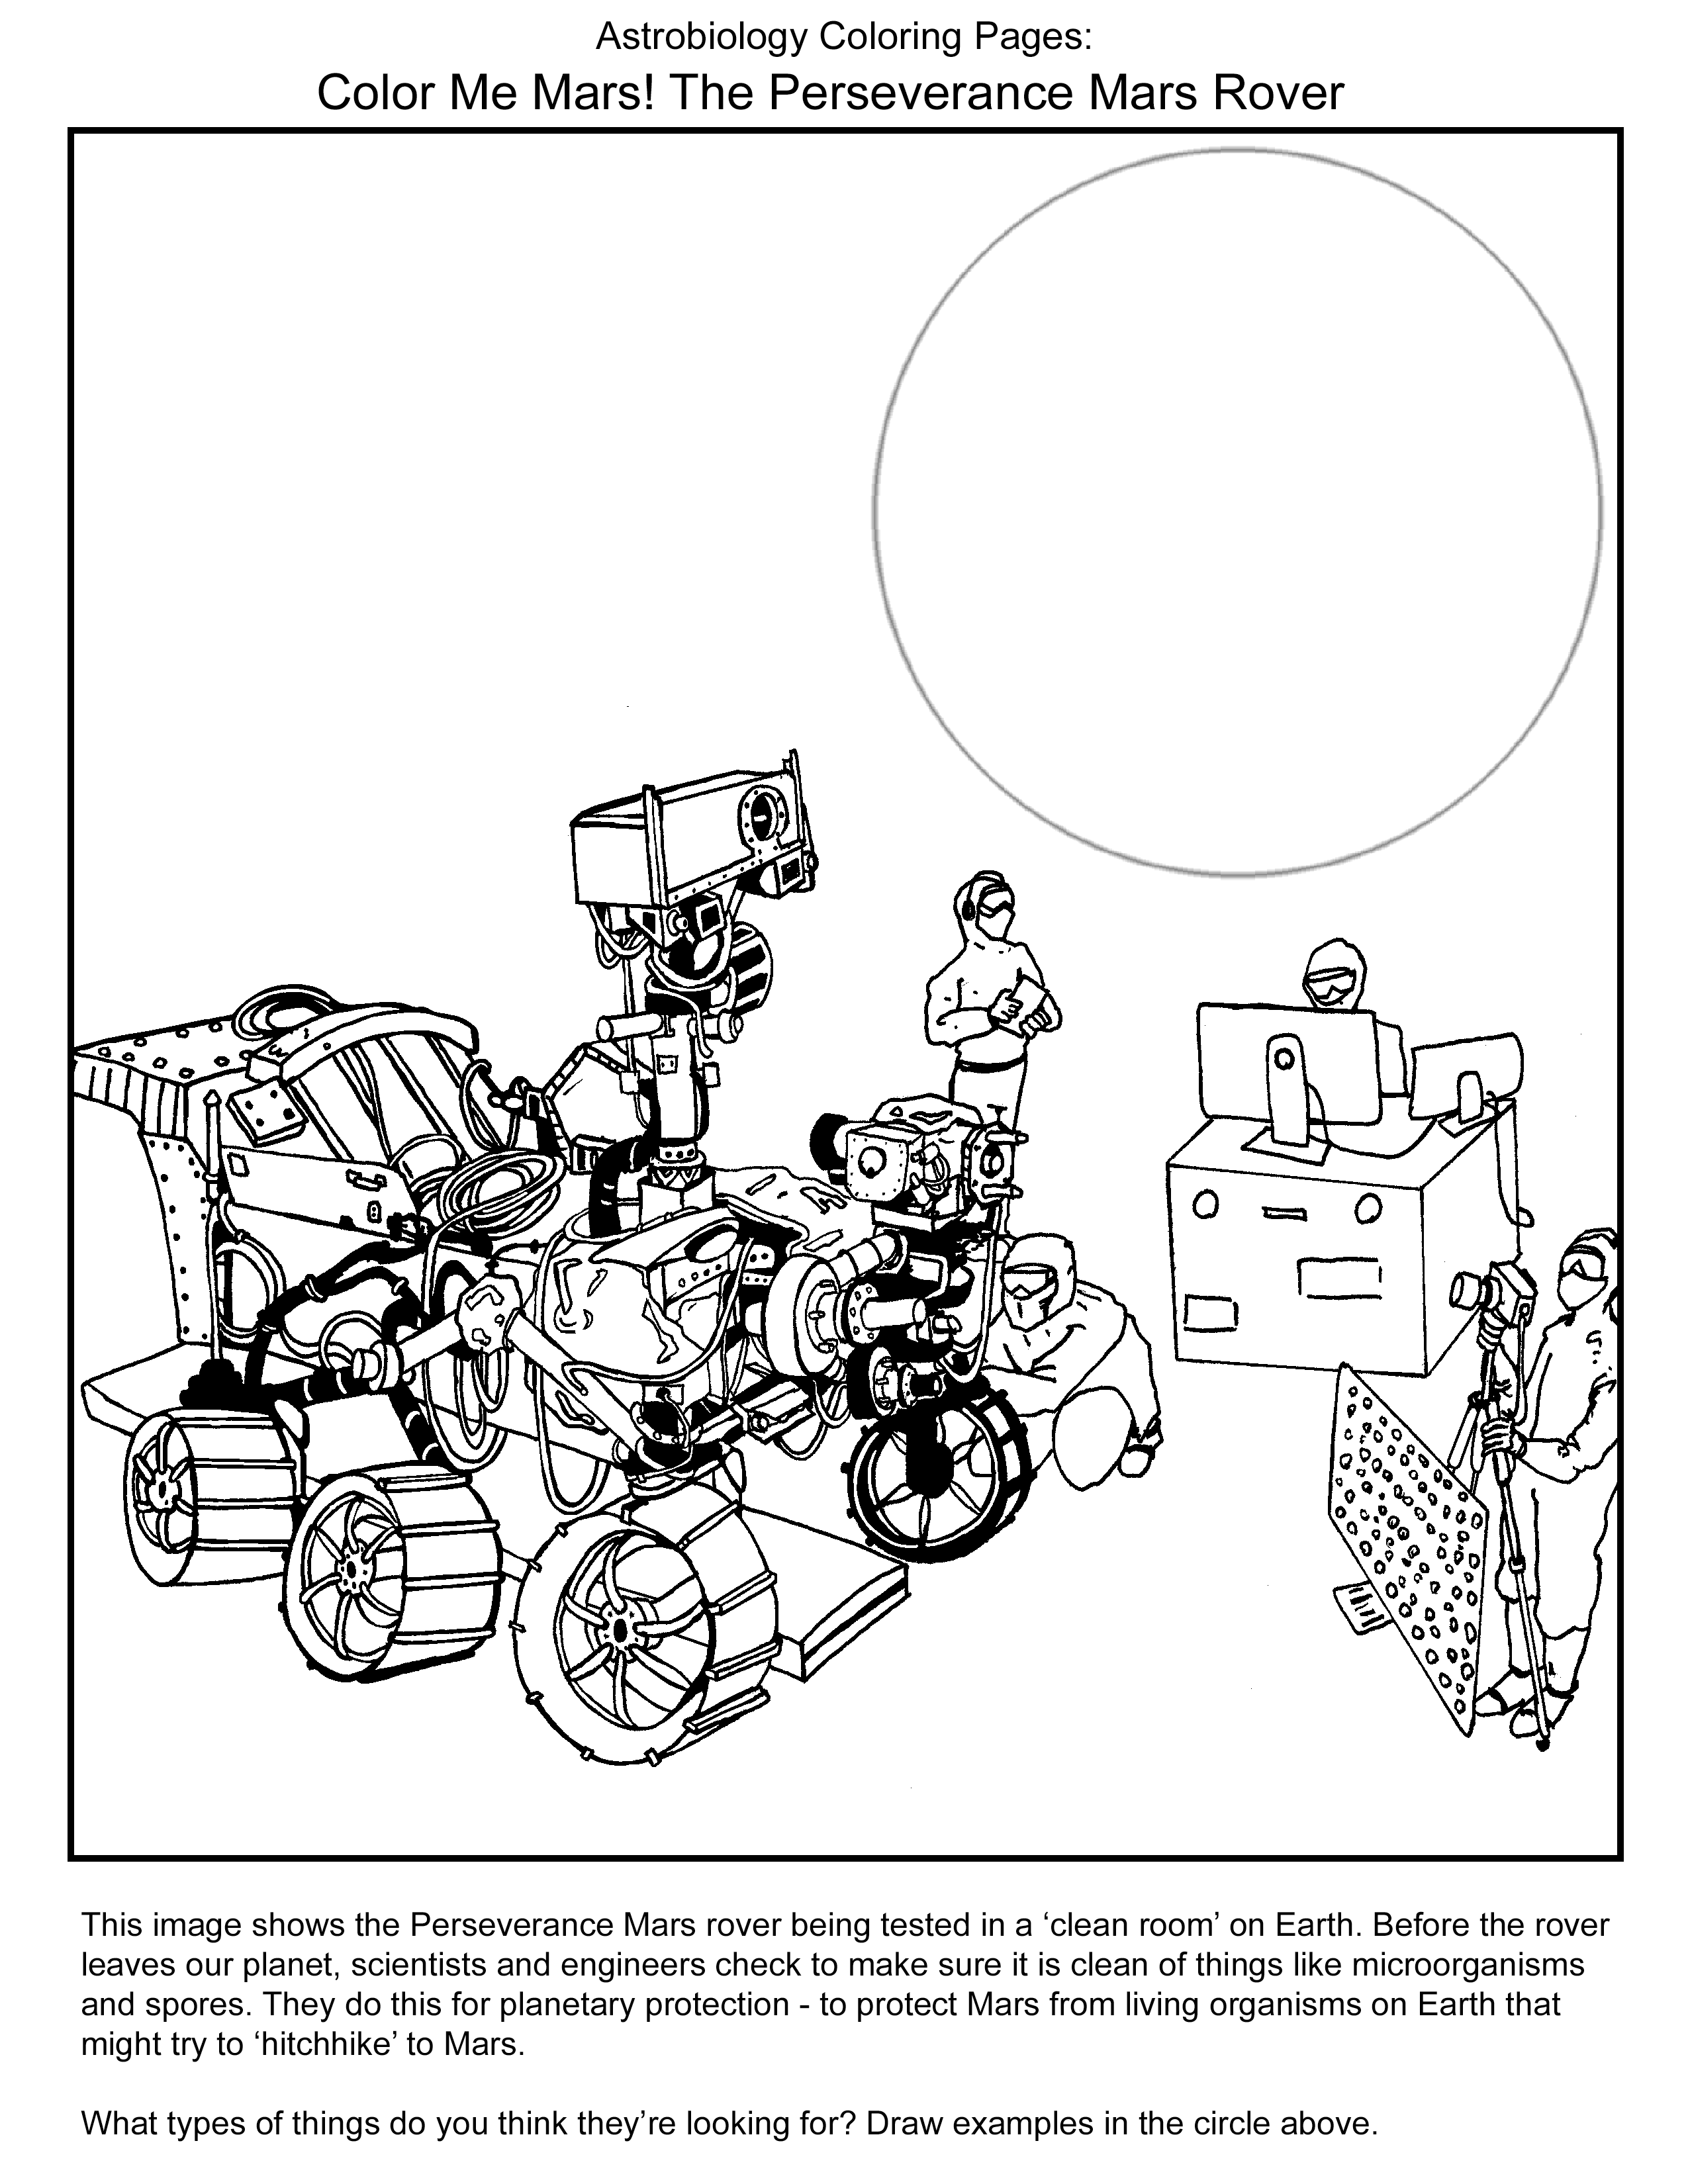 Astrobiology Coloring Pages Astrobiology